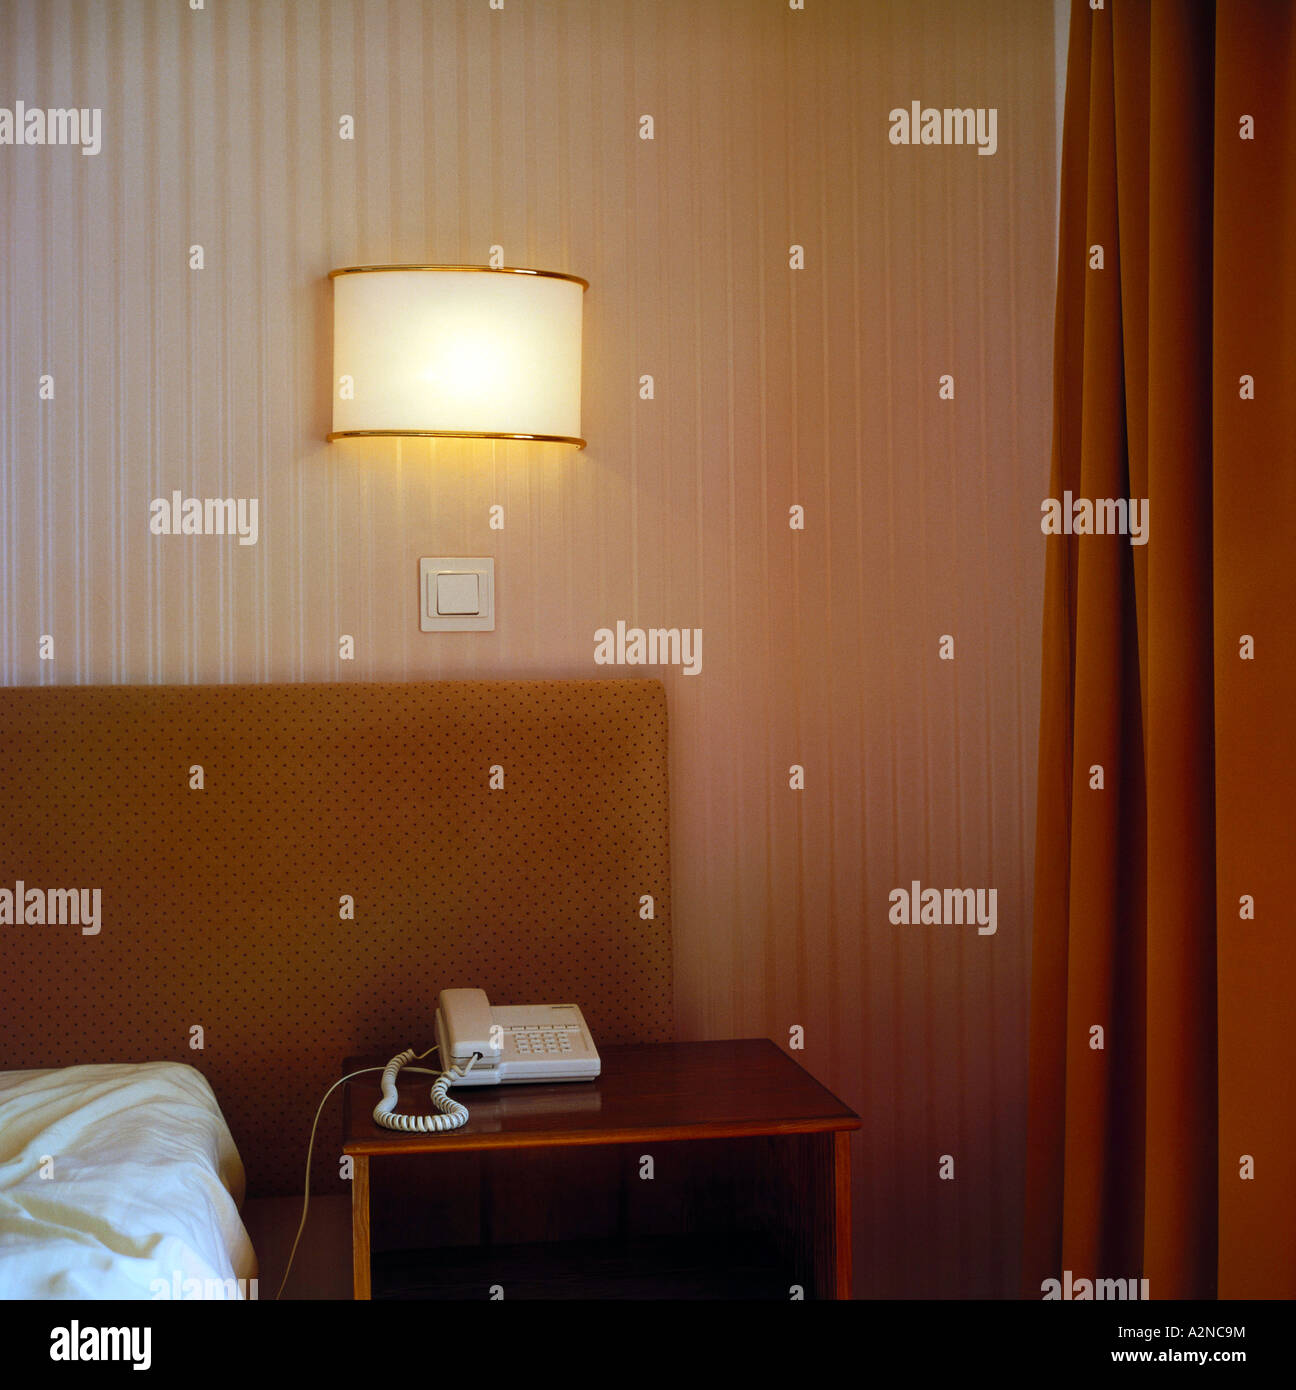 Landline phone on side table of bed - Stock Image